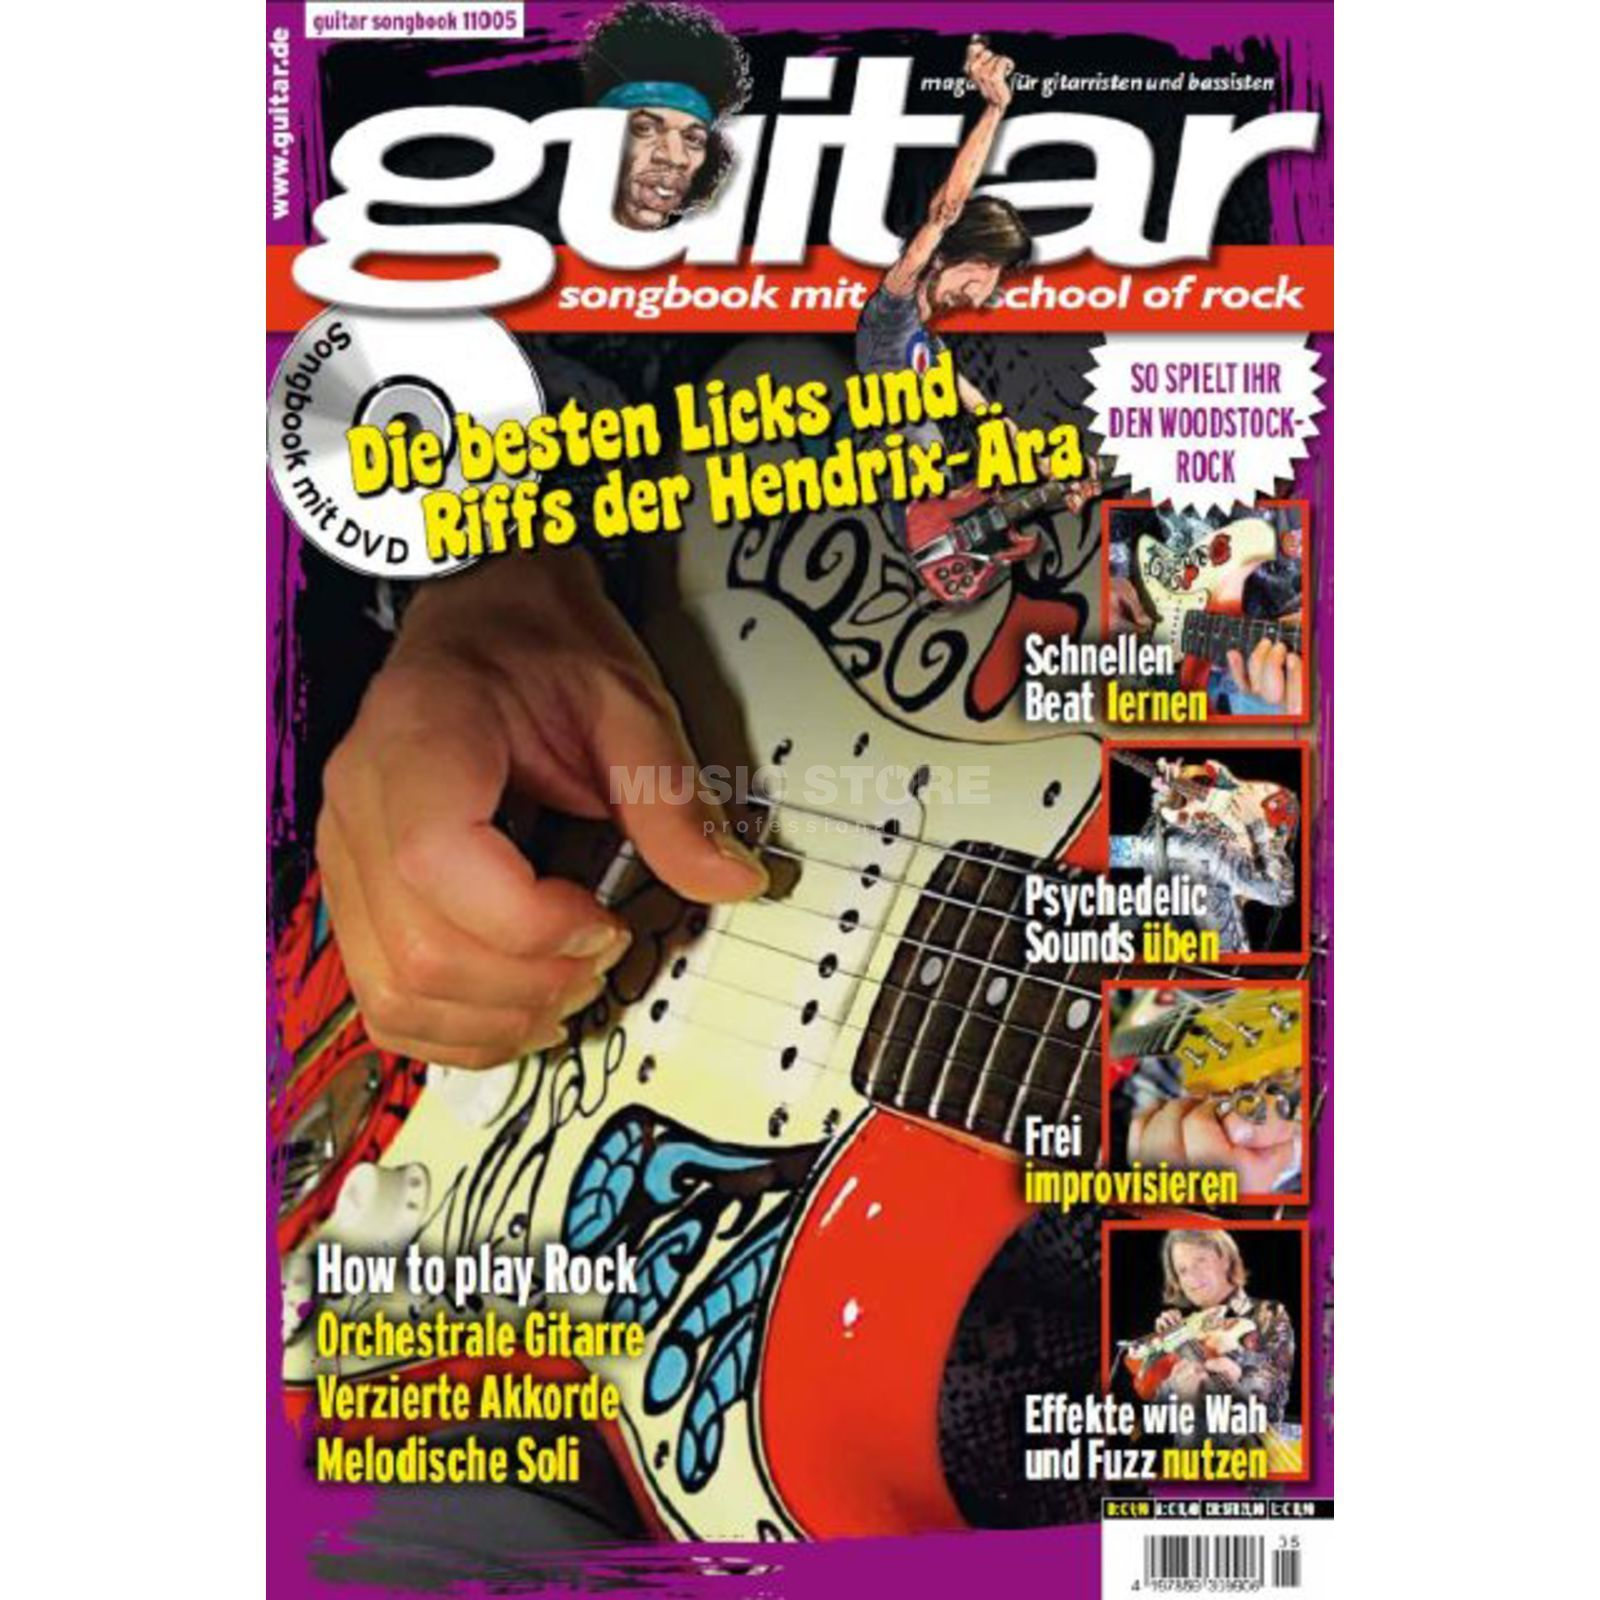 PPV Medien guitar Vol 6 - School of Rock DVD, Thomas Blug Produktbillede